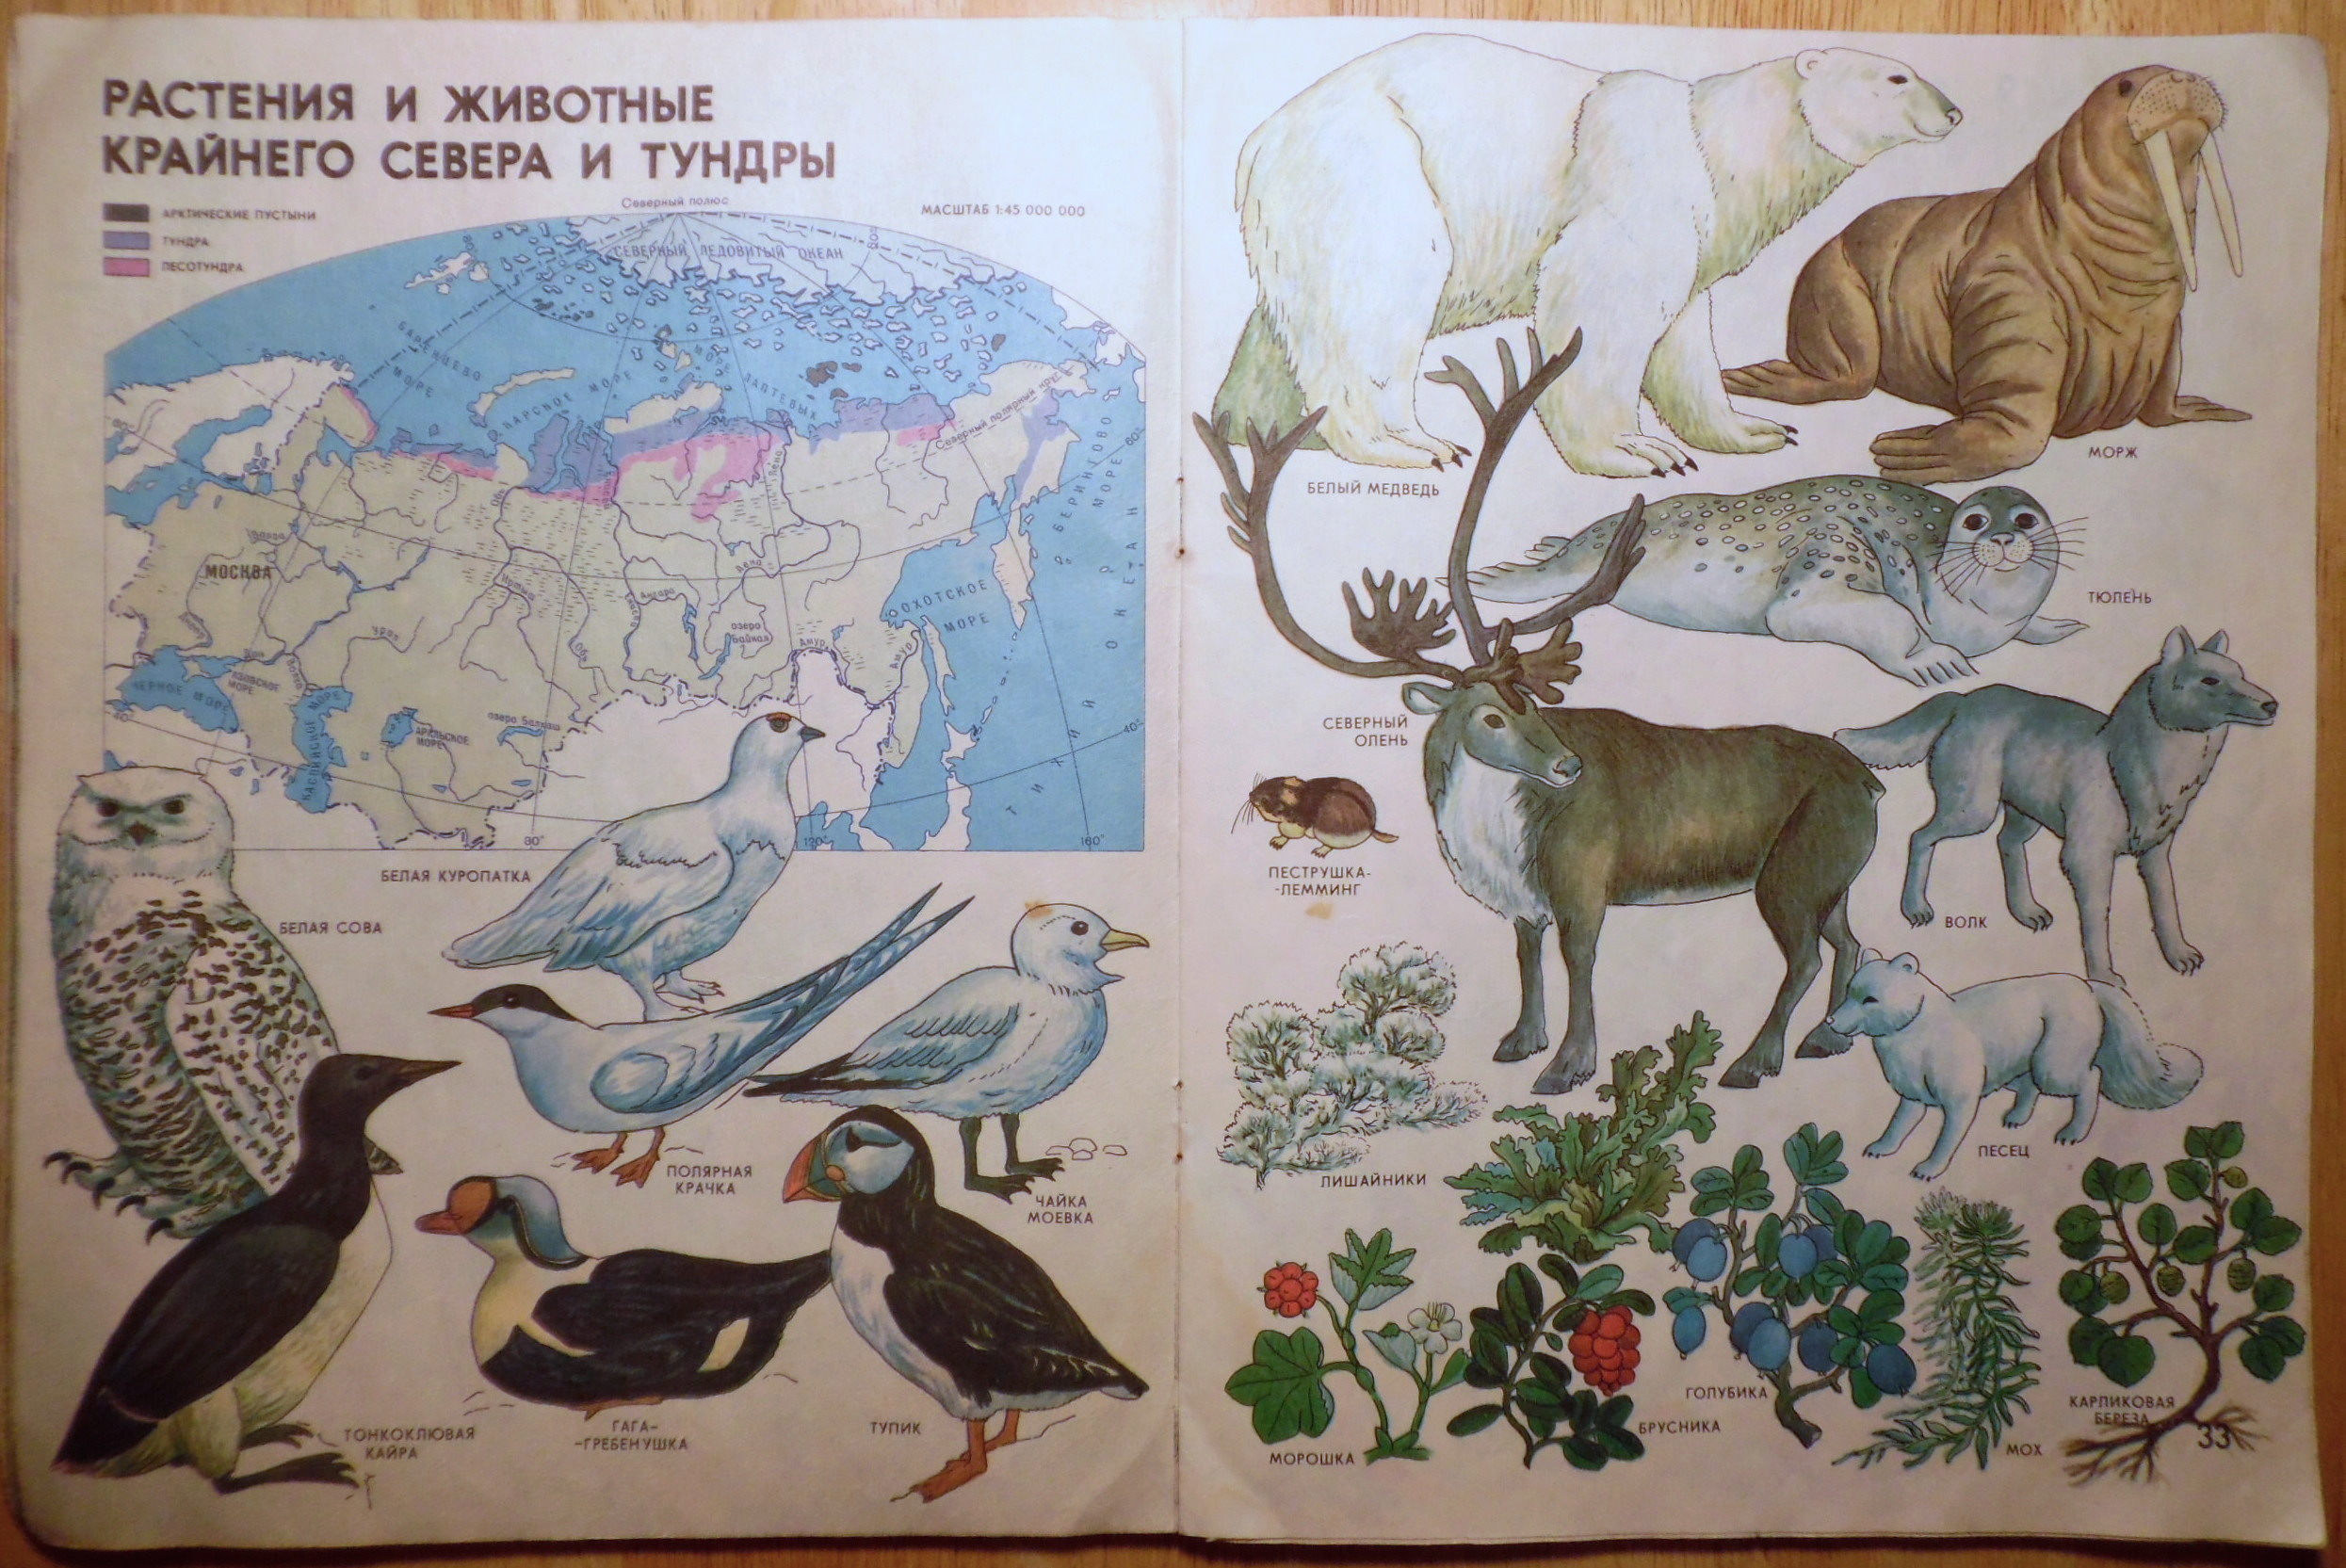 Plants and Animals of the Far North and the Tundra